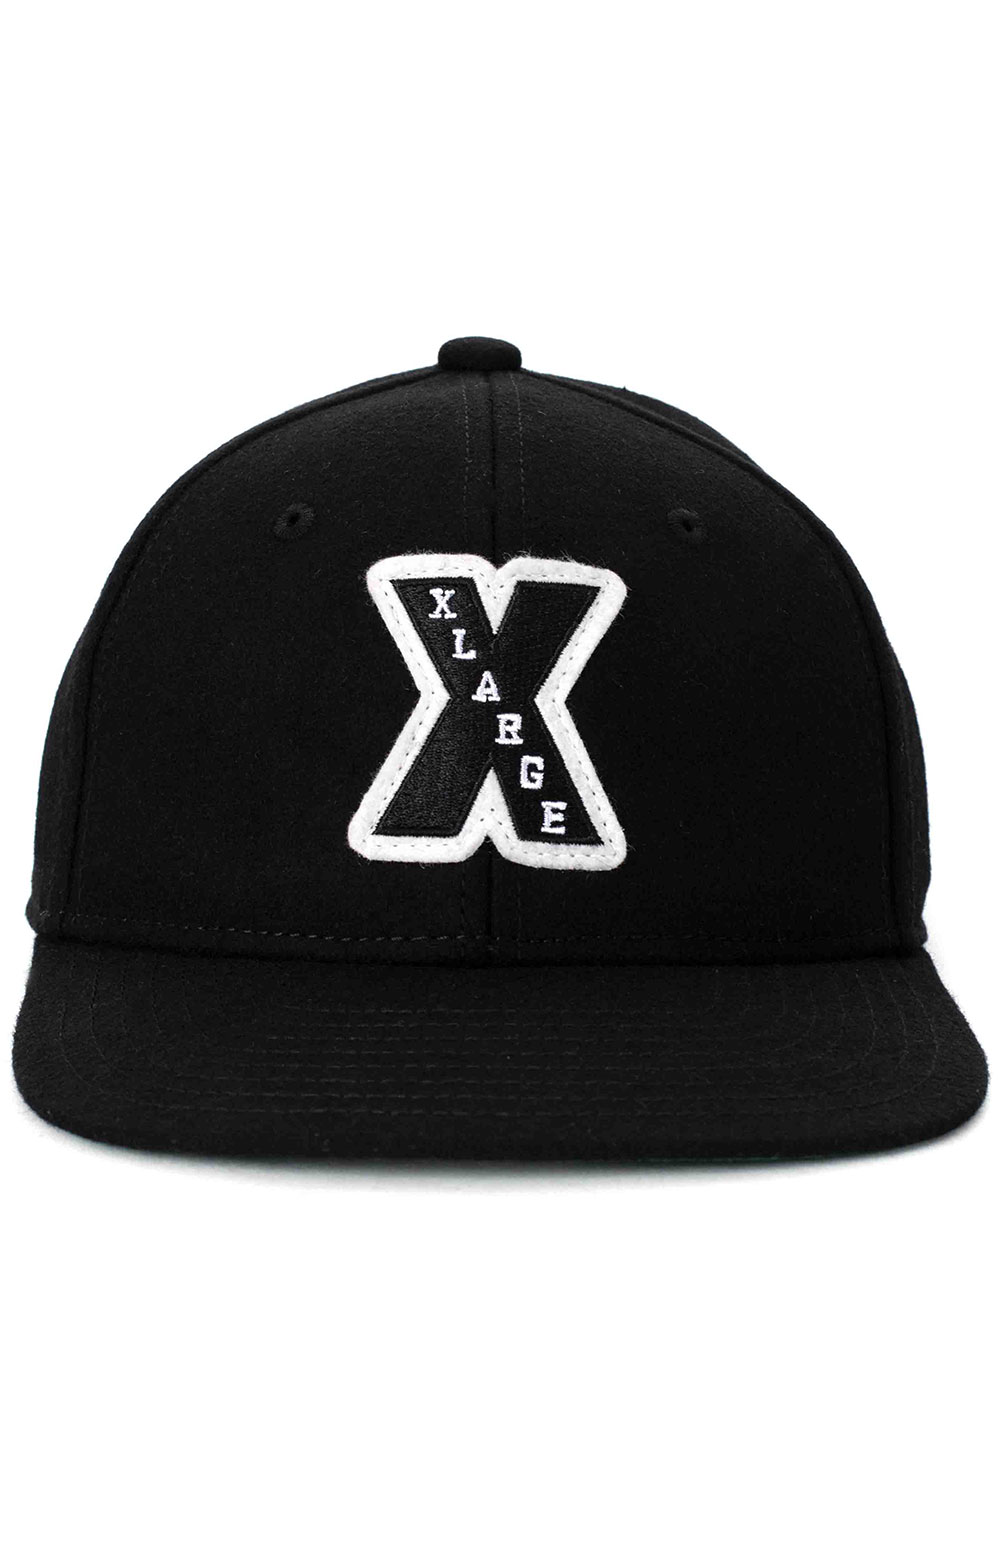 Patched Wool Cap - Black 2